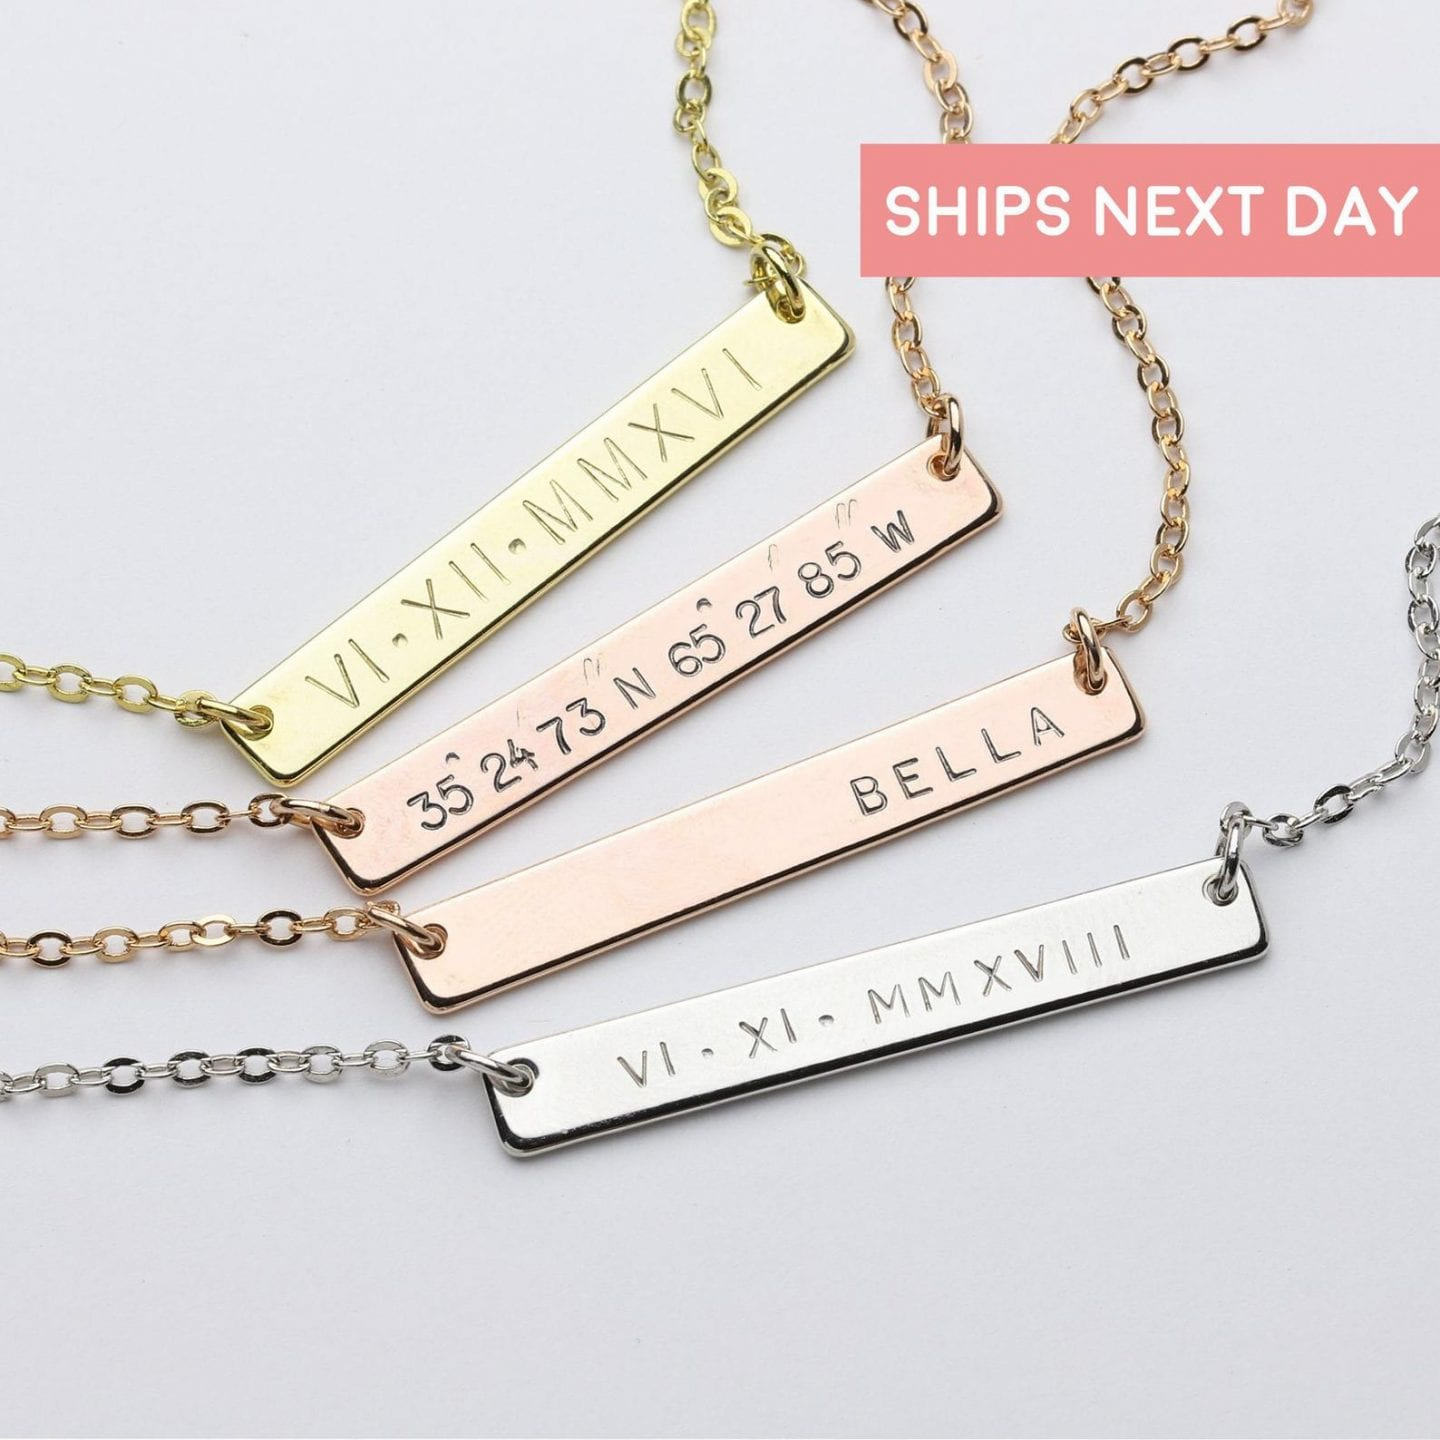 Initial Jewelry by popular San Francisco fashion blog, Just Add Glam: image of a personalized bar necklace.